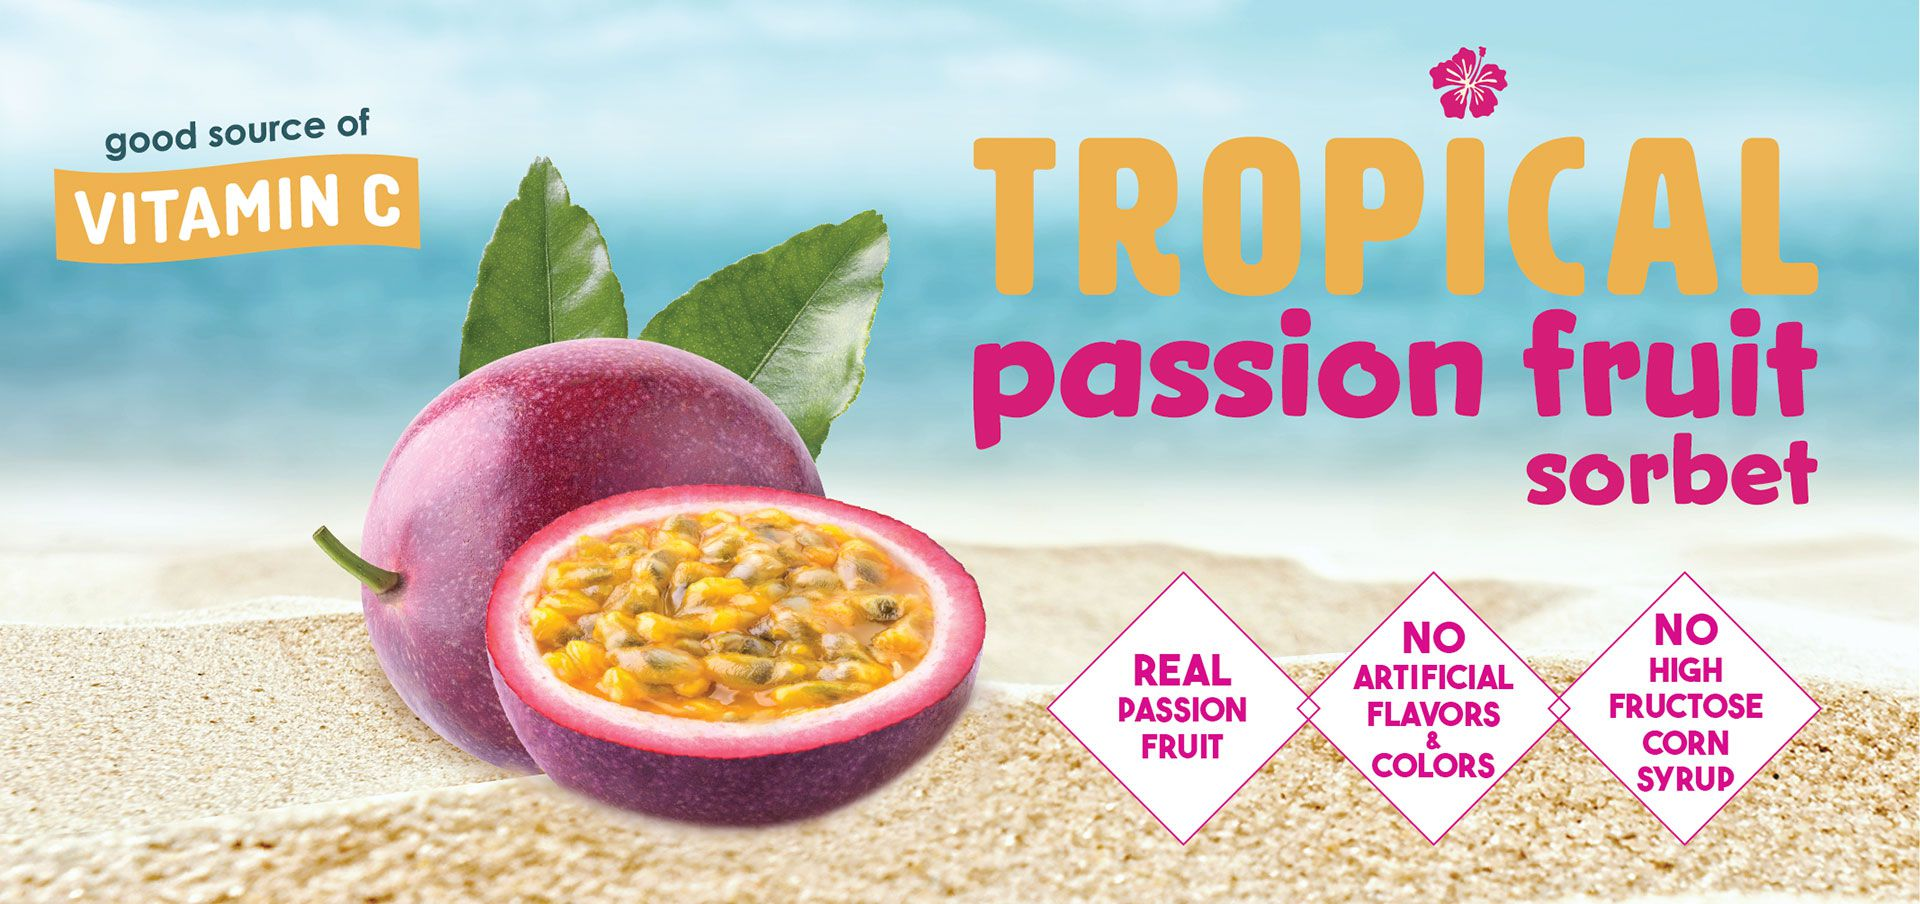 tropical passion fruit sorbet label image